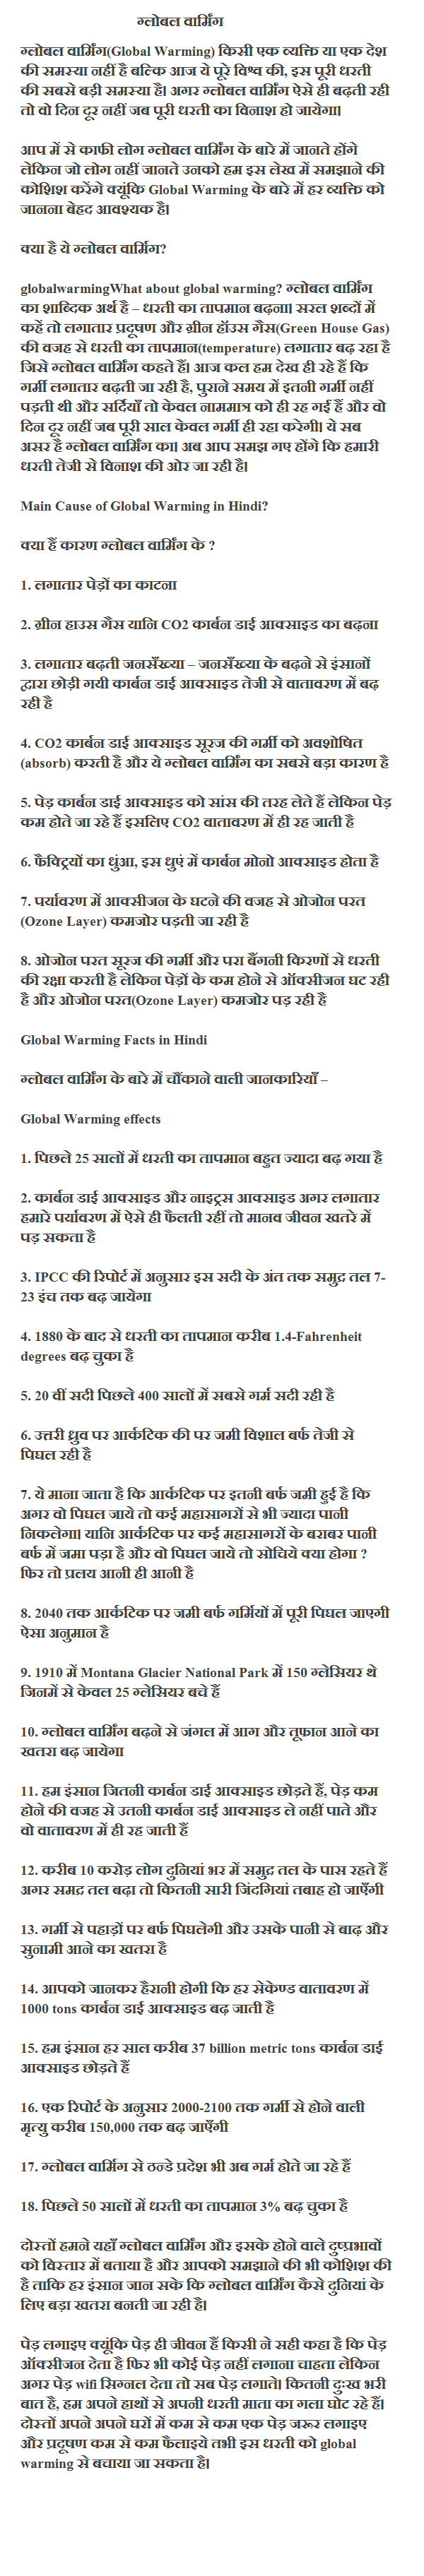 global warming in hindi language Read and download essay in hindi language on global warming free ebooks in pdf format - the merck manual wiki ac lic lab manual sullair manual swift stards message.